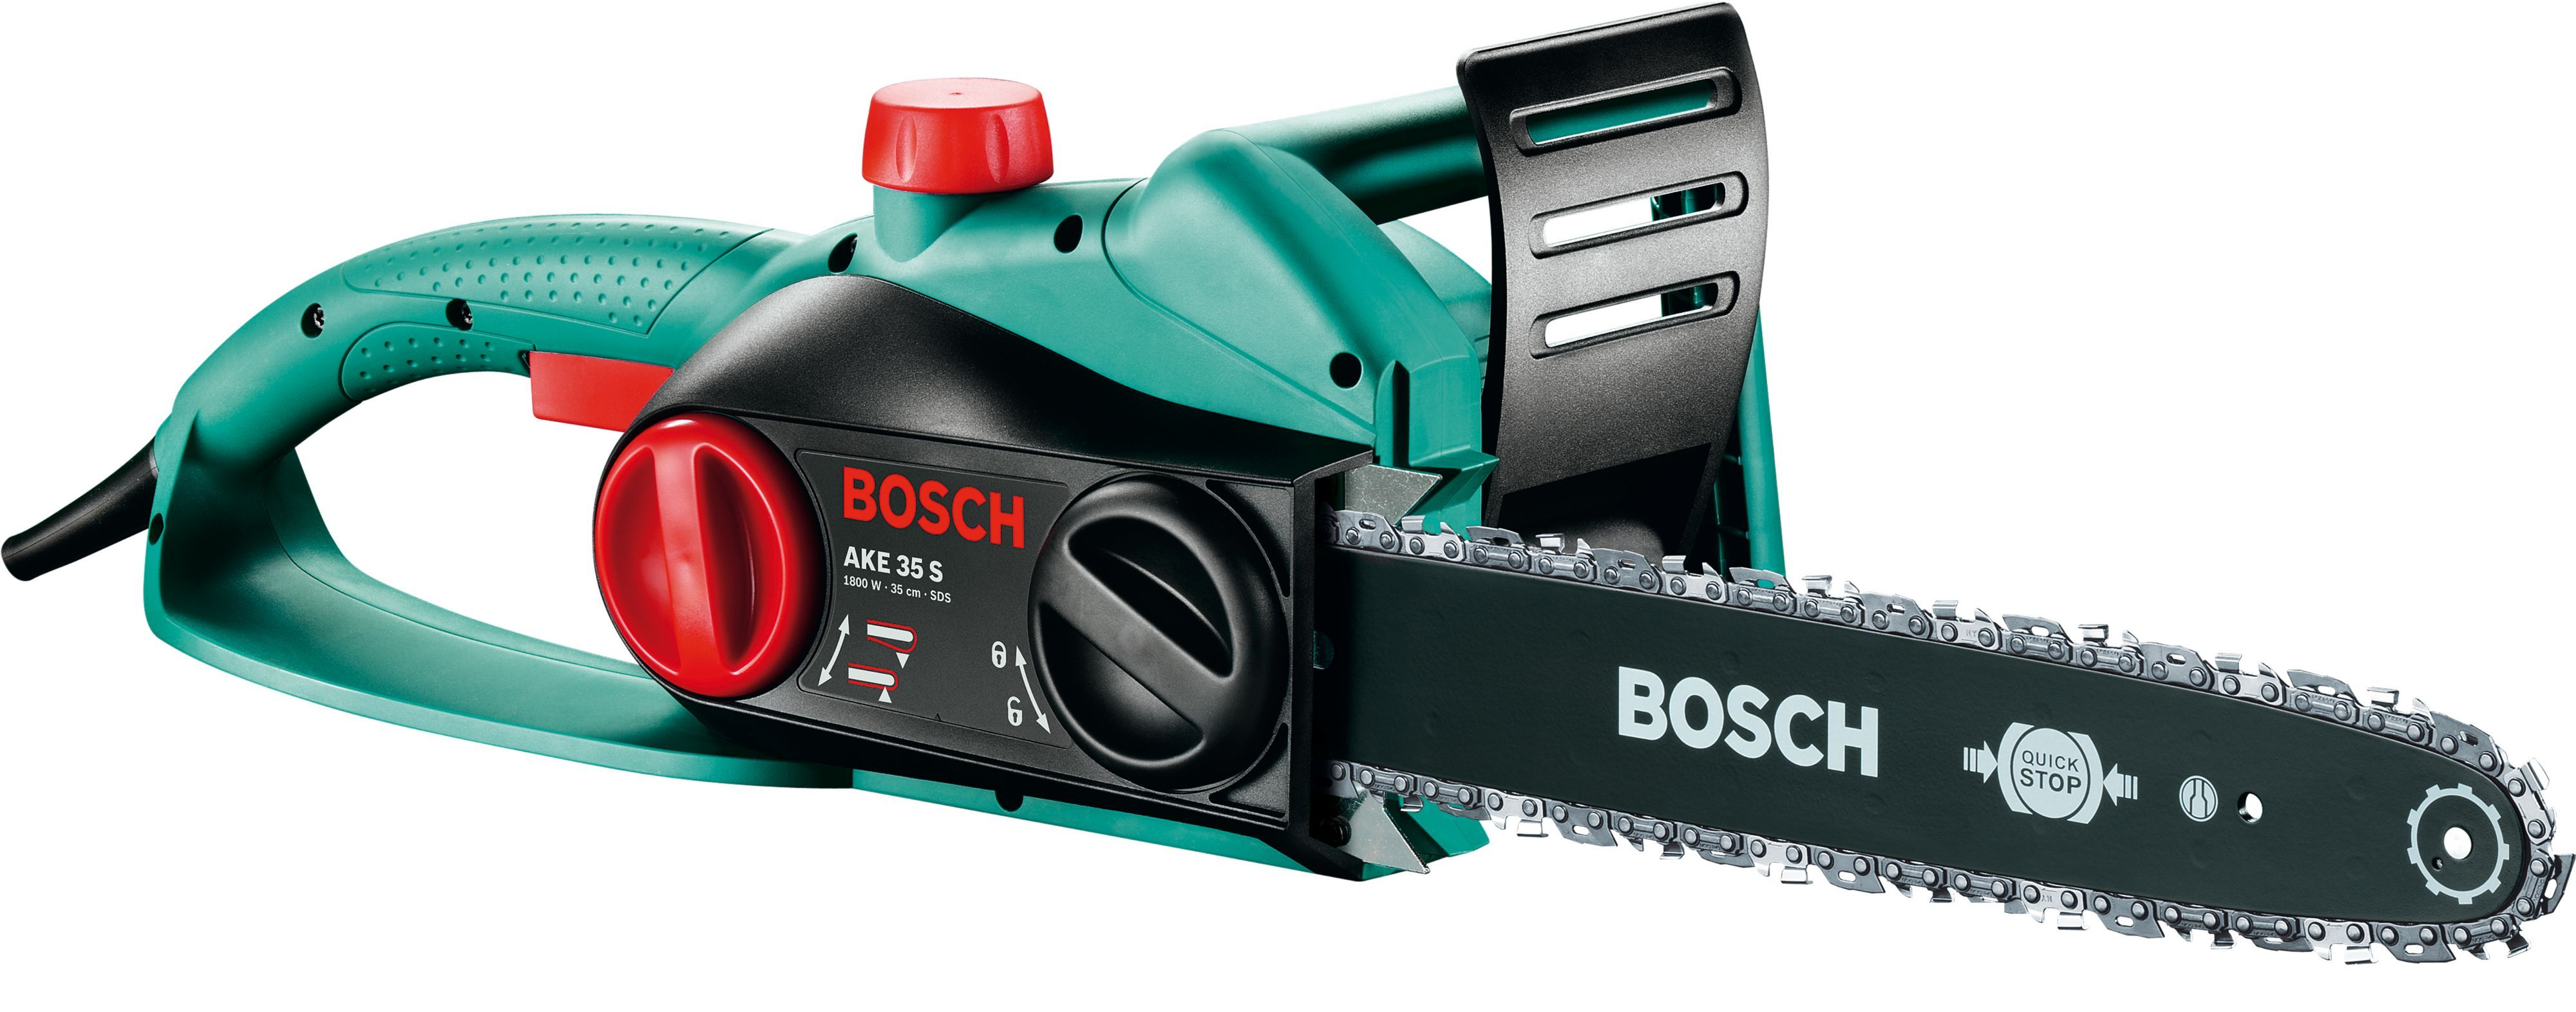 Bosch ake 35 sds corded electric chainsaw chainsaw and cord bosch ake 35 sds corded electric chainsaw departments diy at bq greentooth Choice Image